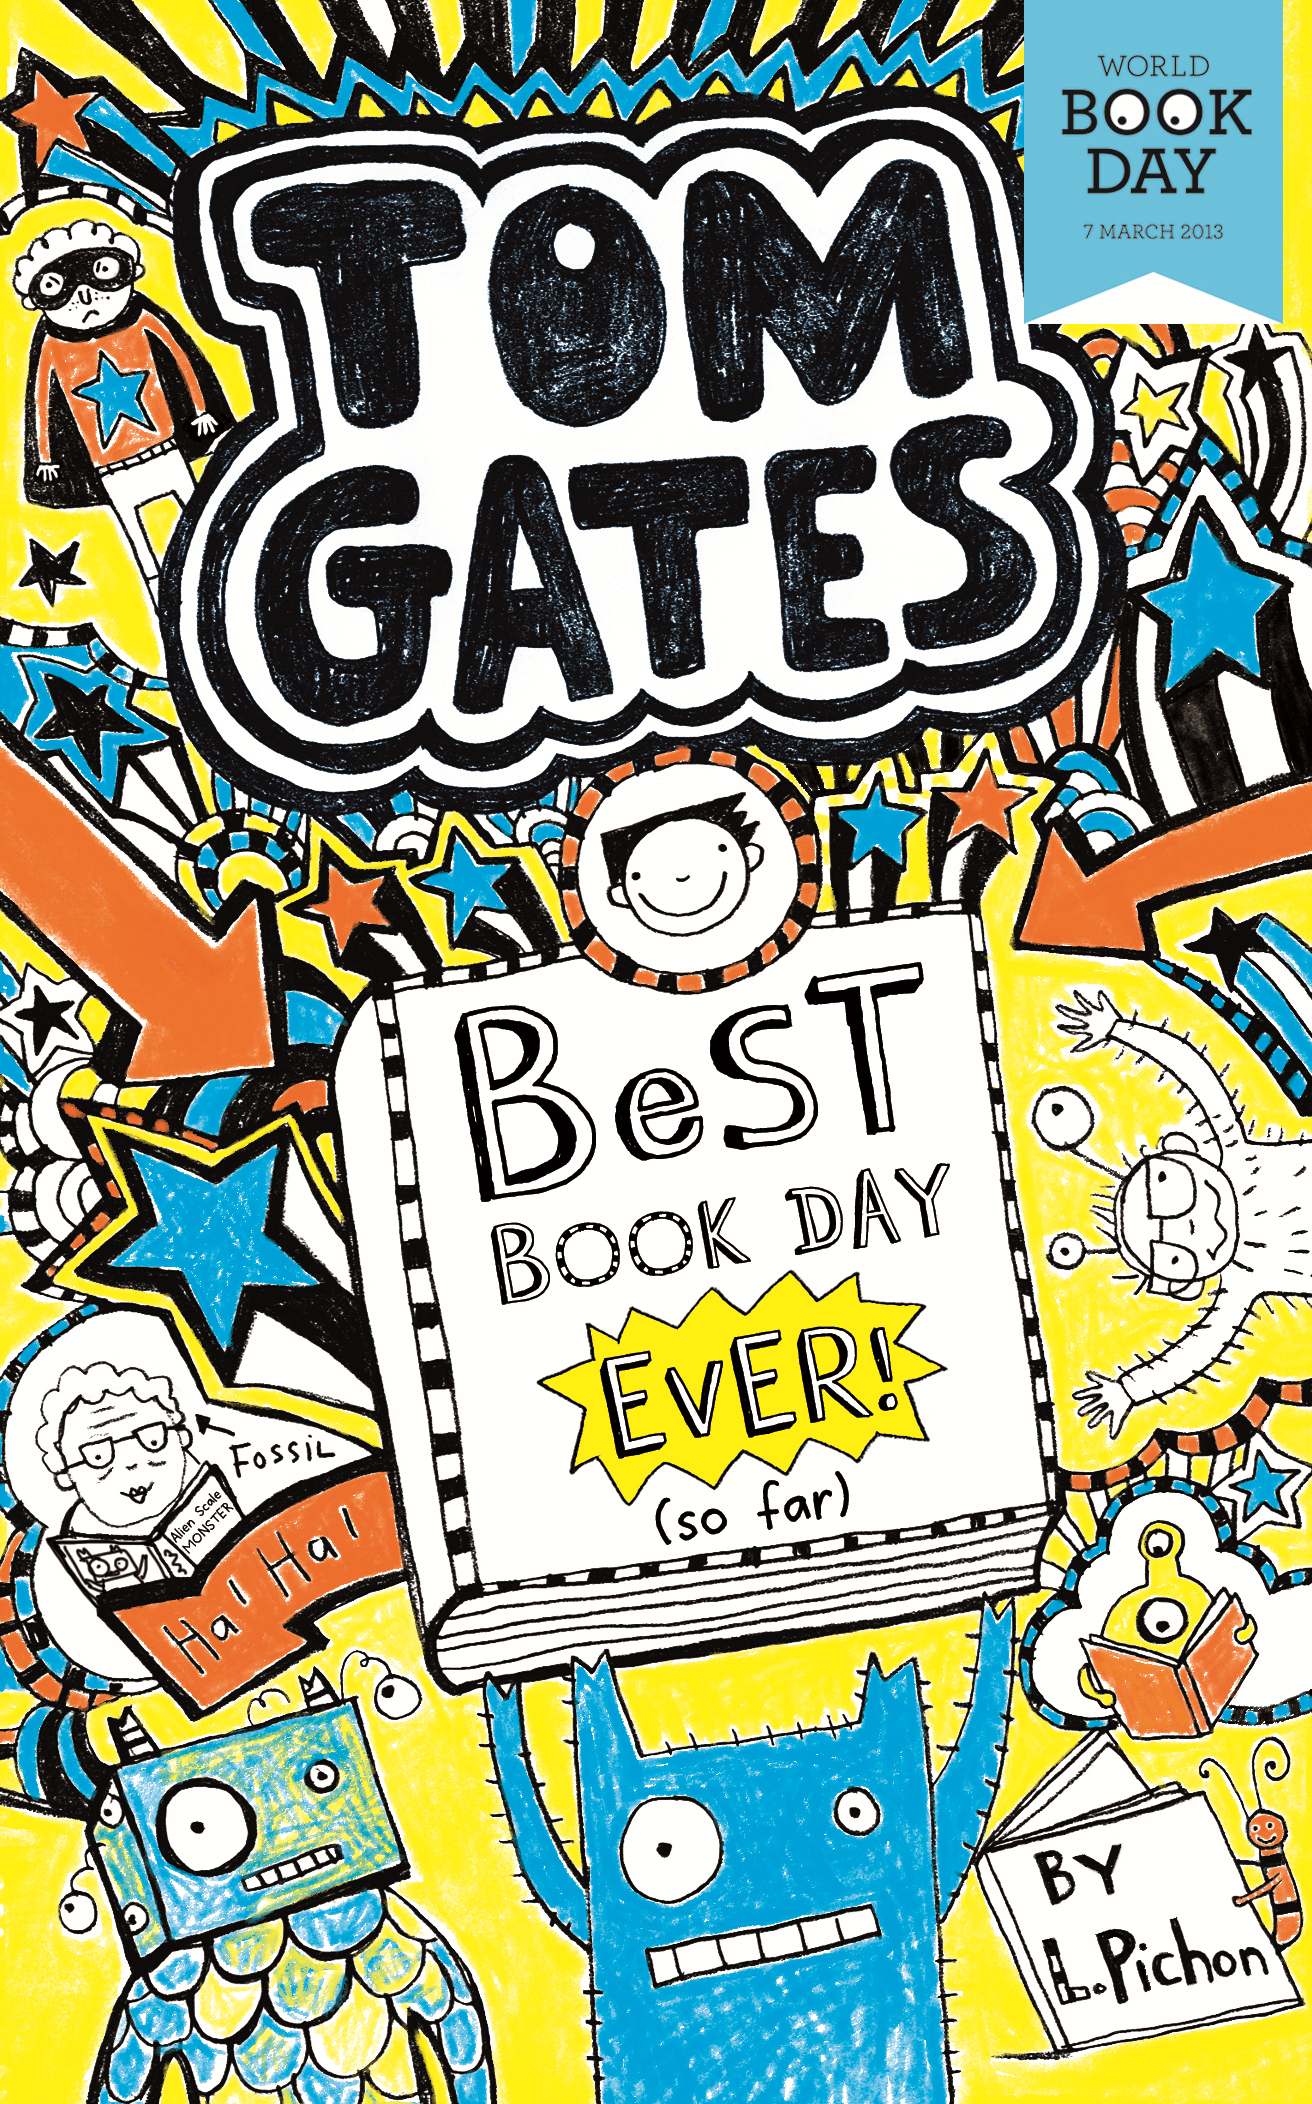 Tom Gates: Best Book Day Ever! (so far) World Book Day 2013